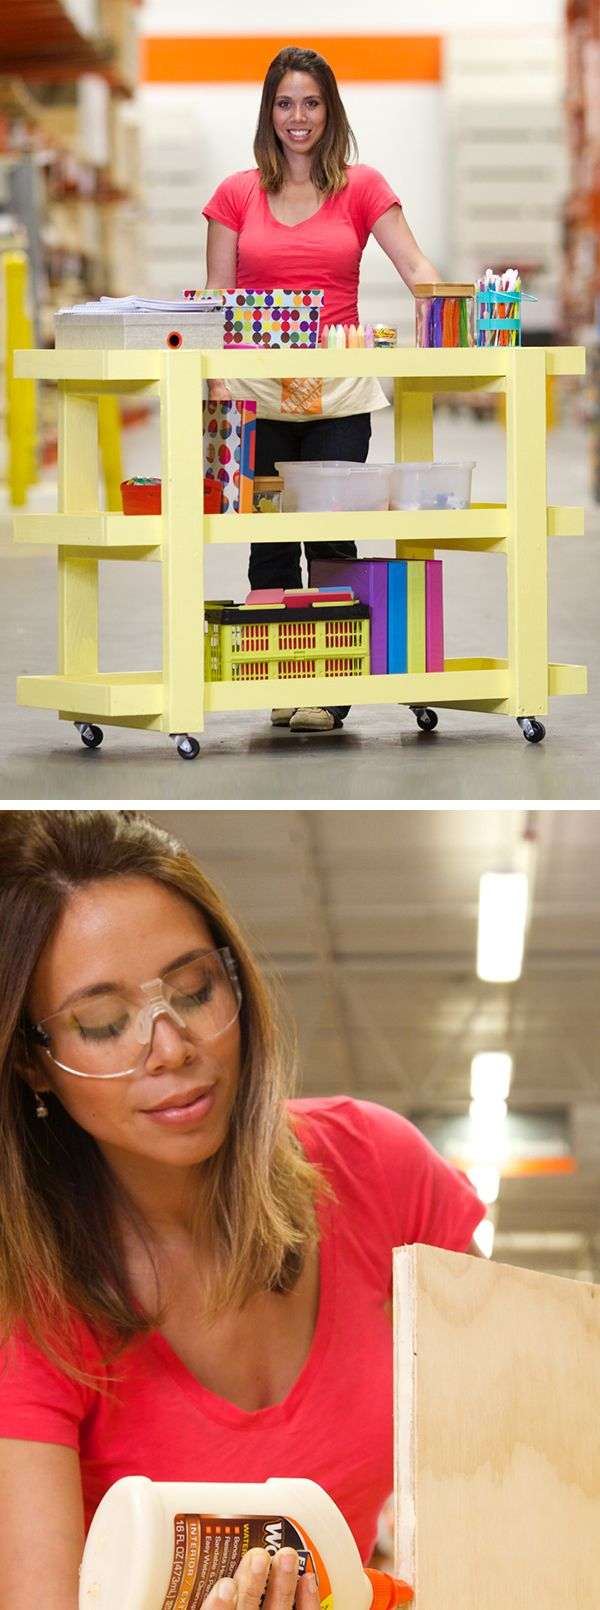 This DIY rolling storage cart would be a great gift wrapping station, back to school organizing table, a convenient garden cart... the possibilities are endless. DIY blogger Ana White created this tutorial especially for The Home Depot's Do-It-Herself Workshops.